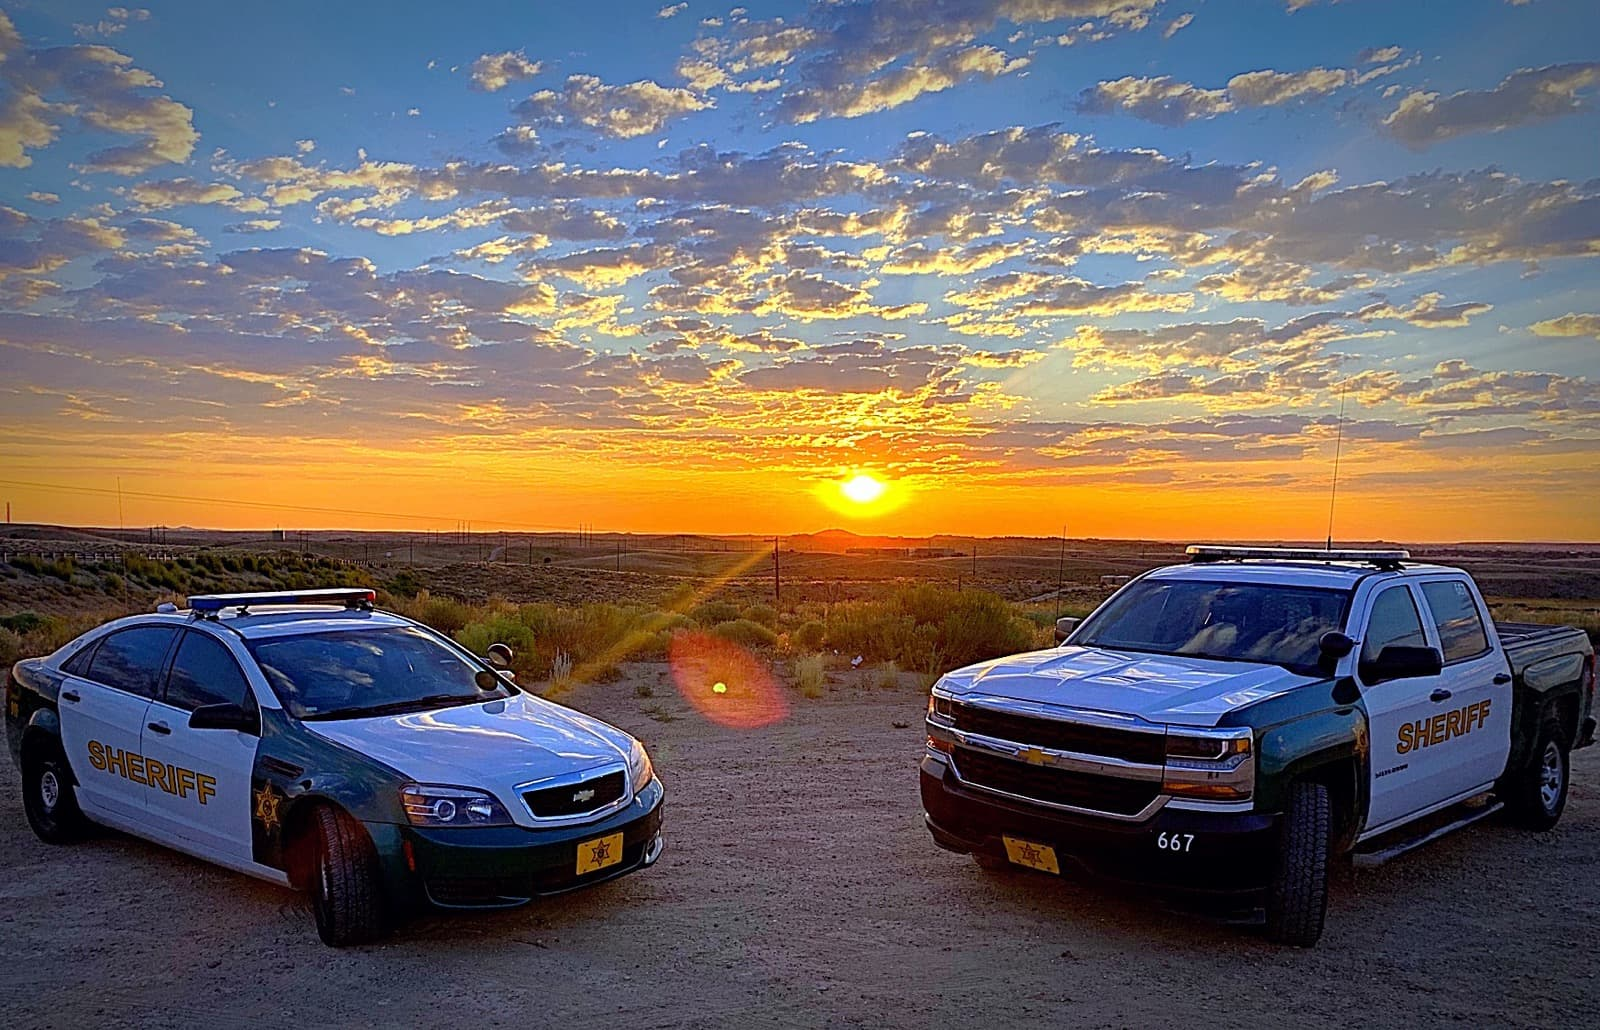 4 door sedan sheriffs office vehicle and 4 door sheriffs truck parked next to each other in front of a sunrise